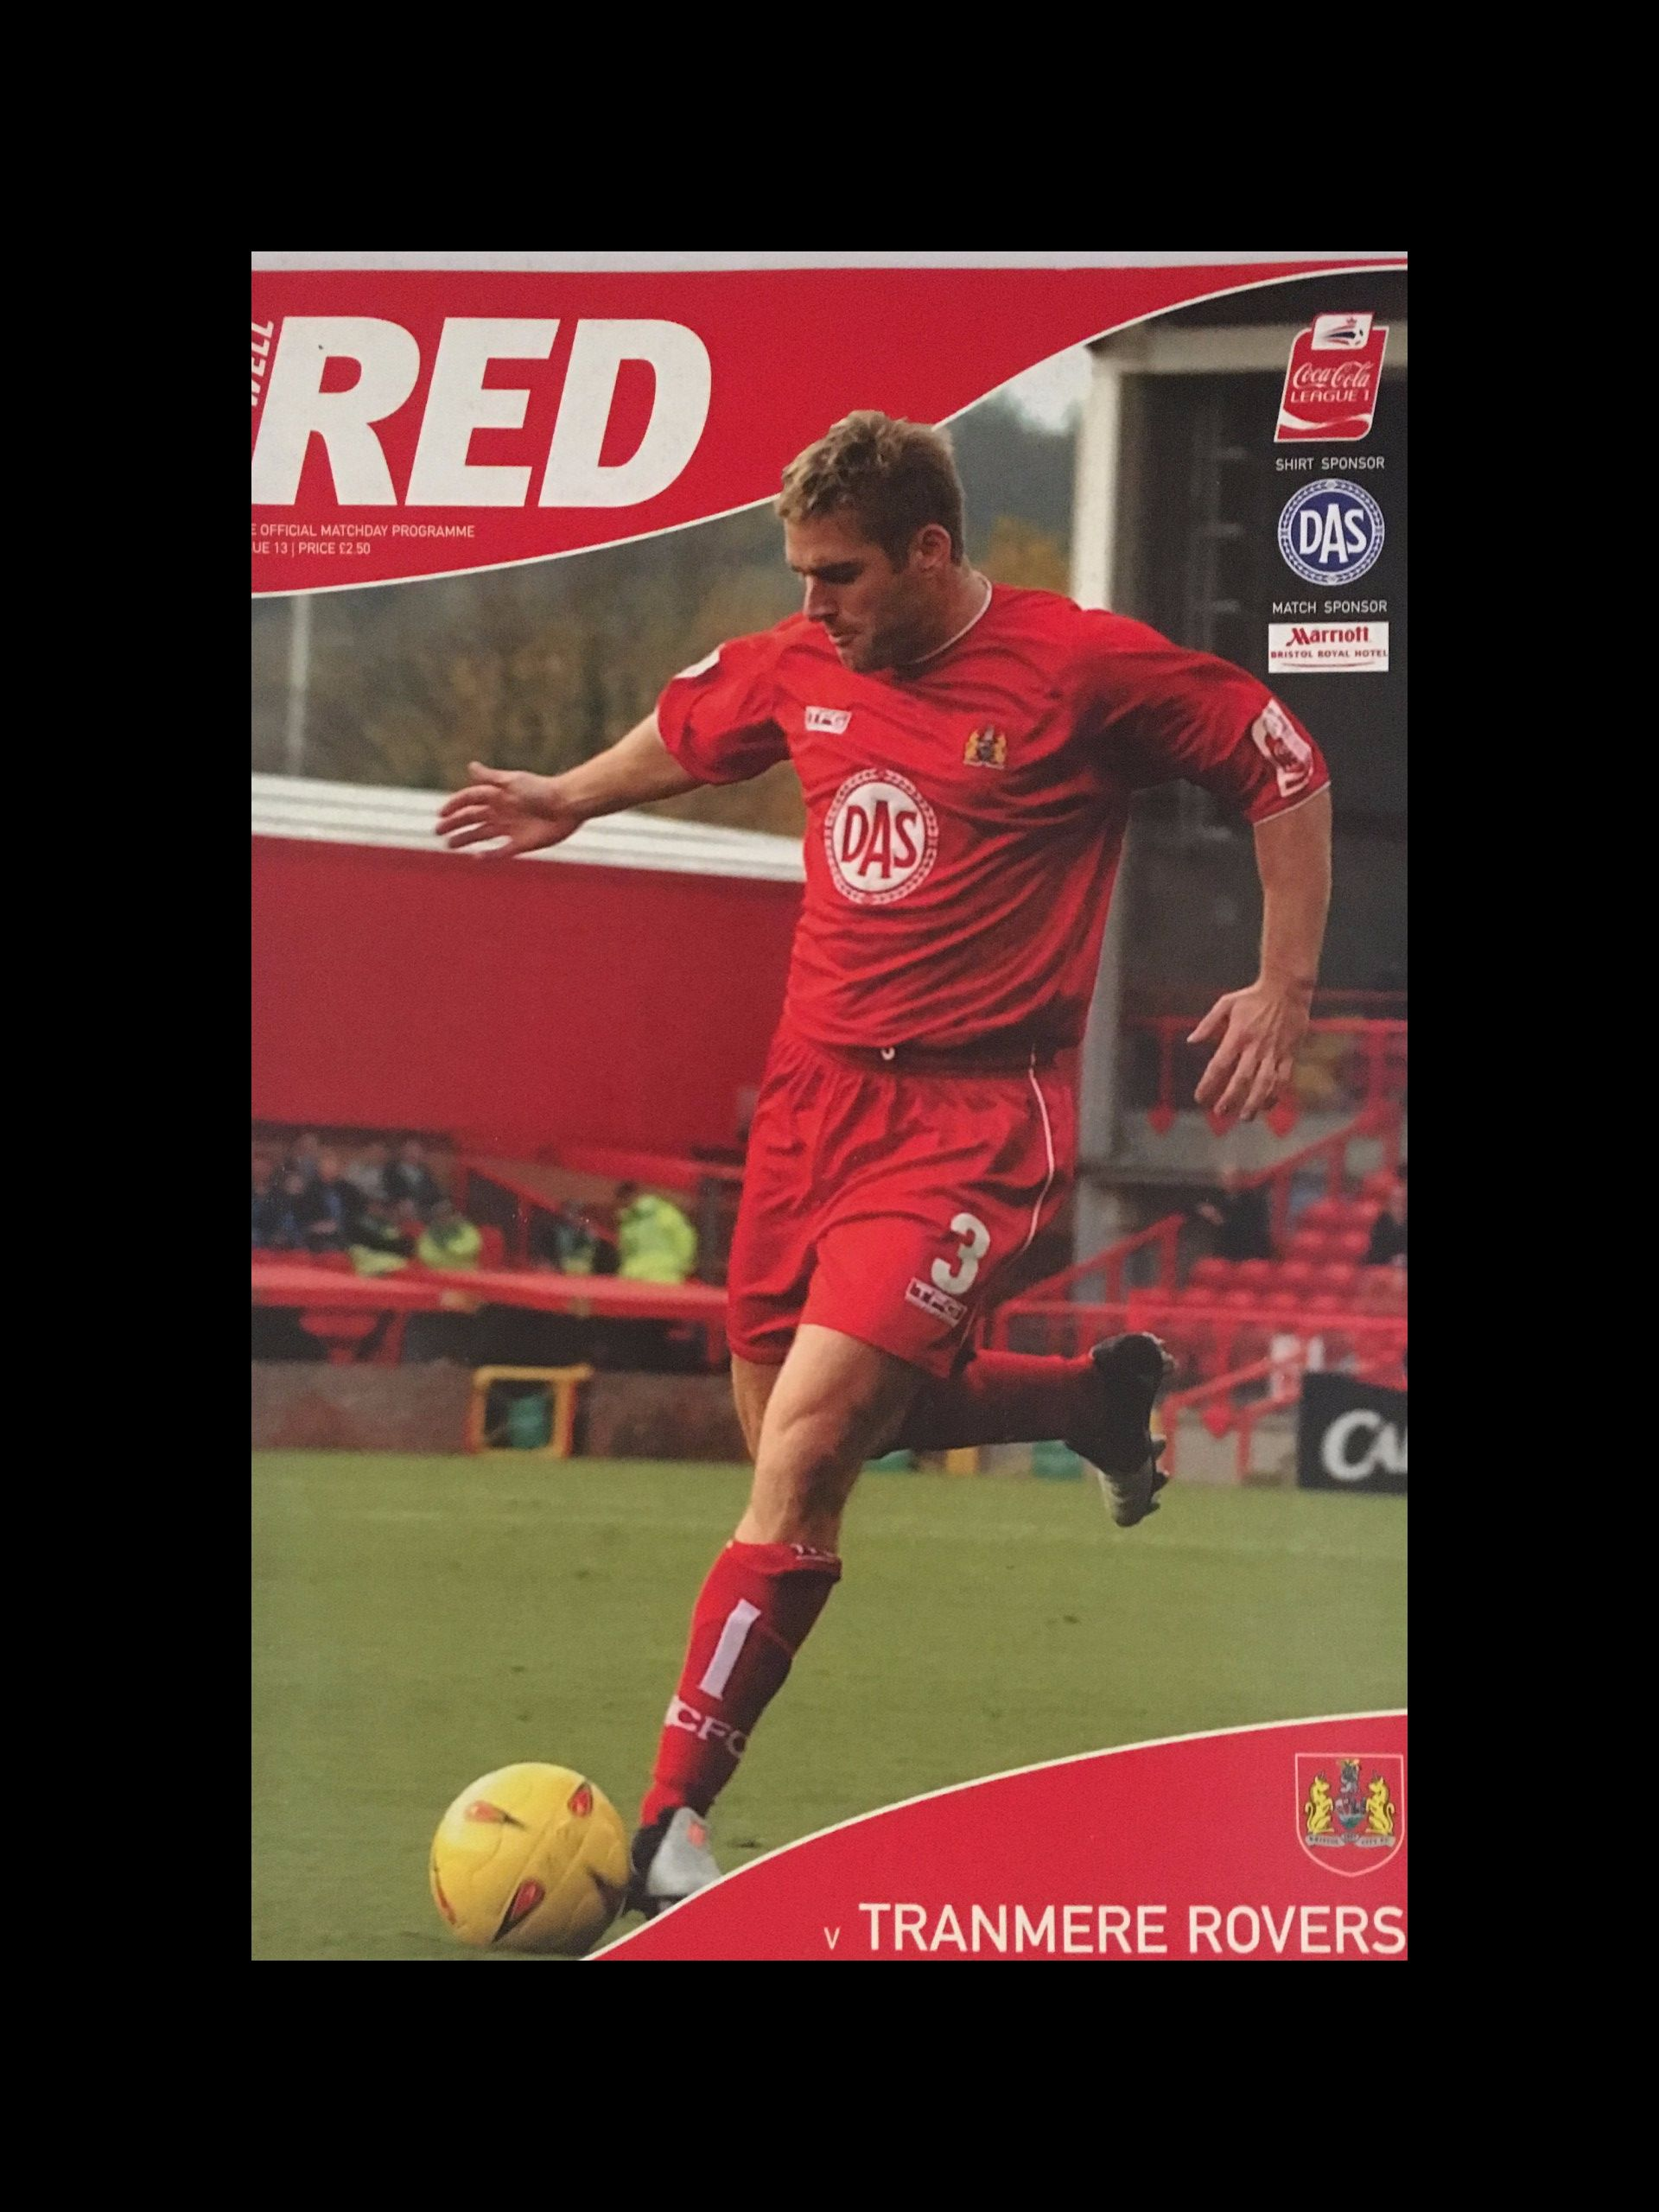 Bristol City v Tranmere Rovers 09-11-2004 Programme